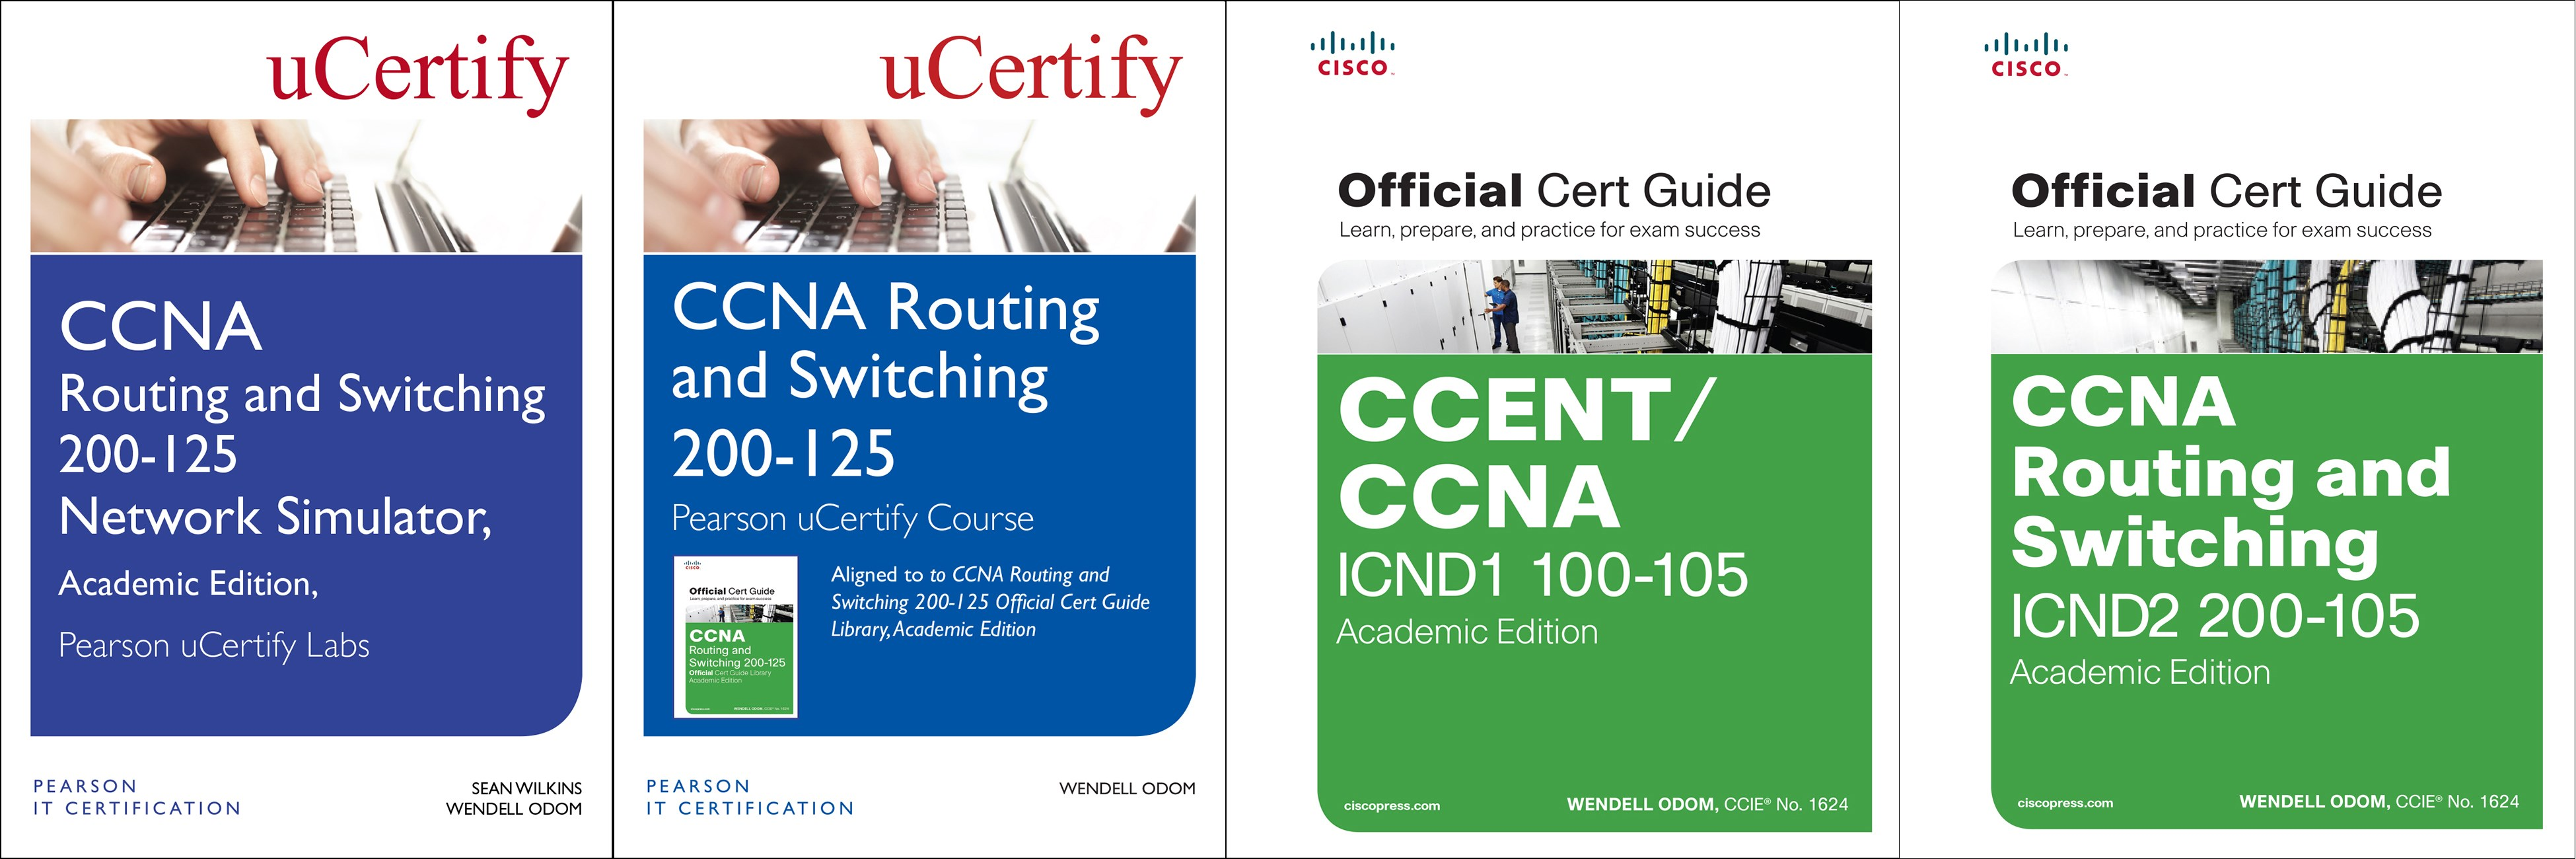 CCNA Routing and Switching 200-125 Pearson uCertify Course, Network Simulator, and Textbook Academic Edition Bundle